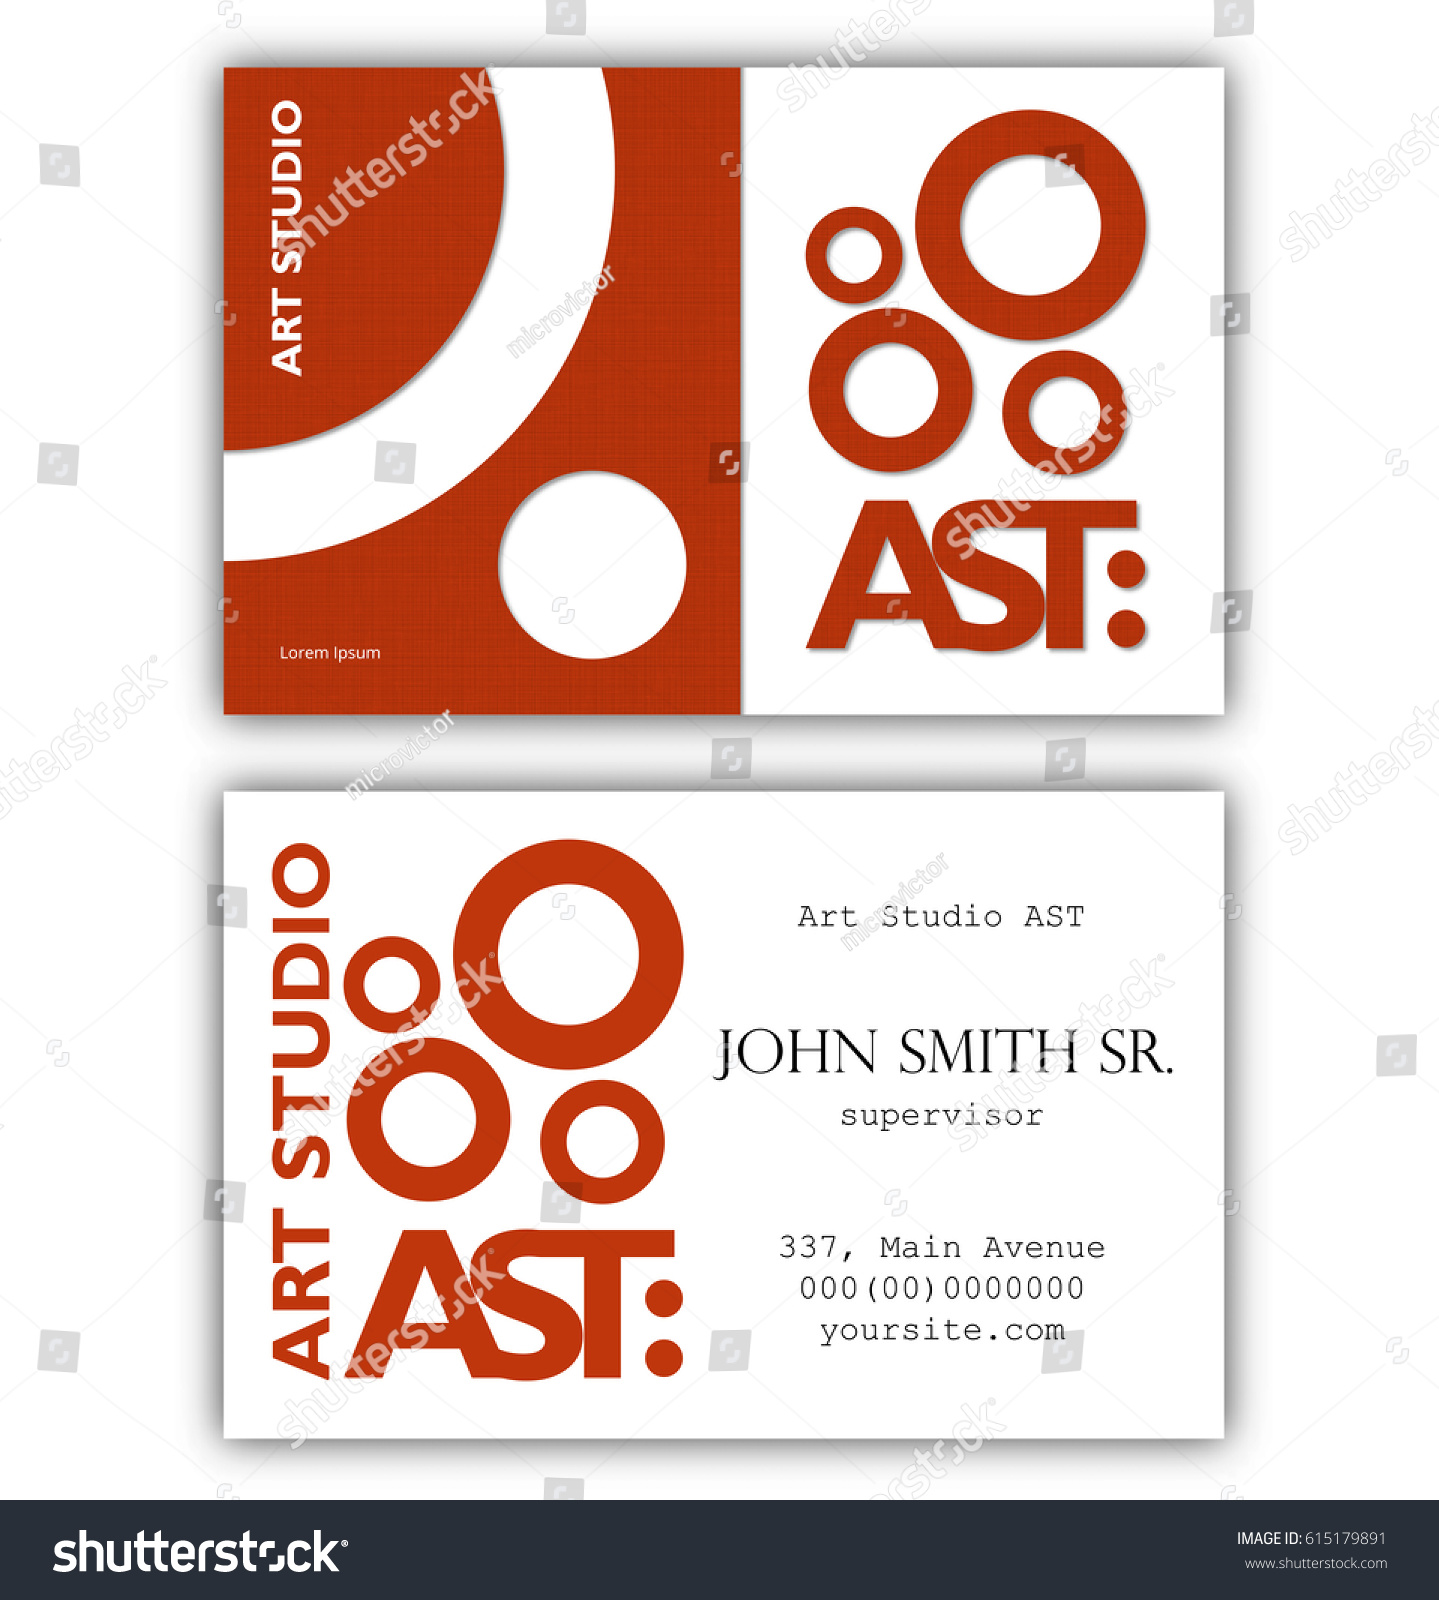 Abstract Business Card Template Art Studio Stock Vector - Business card template uk